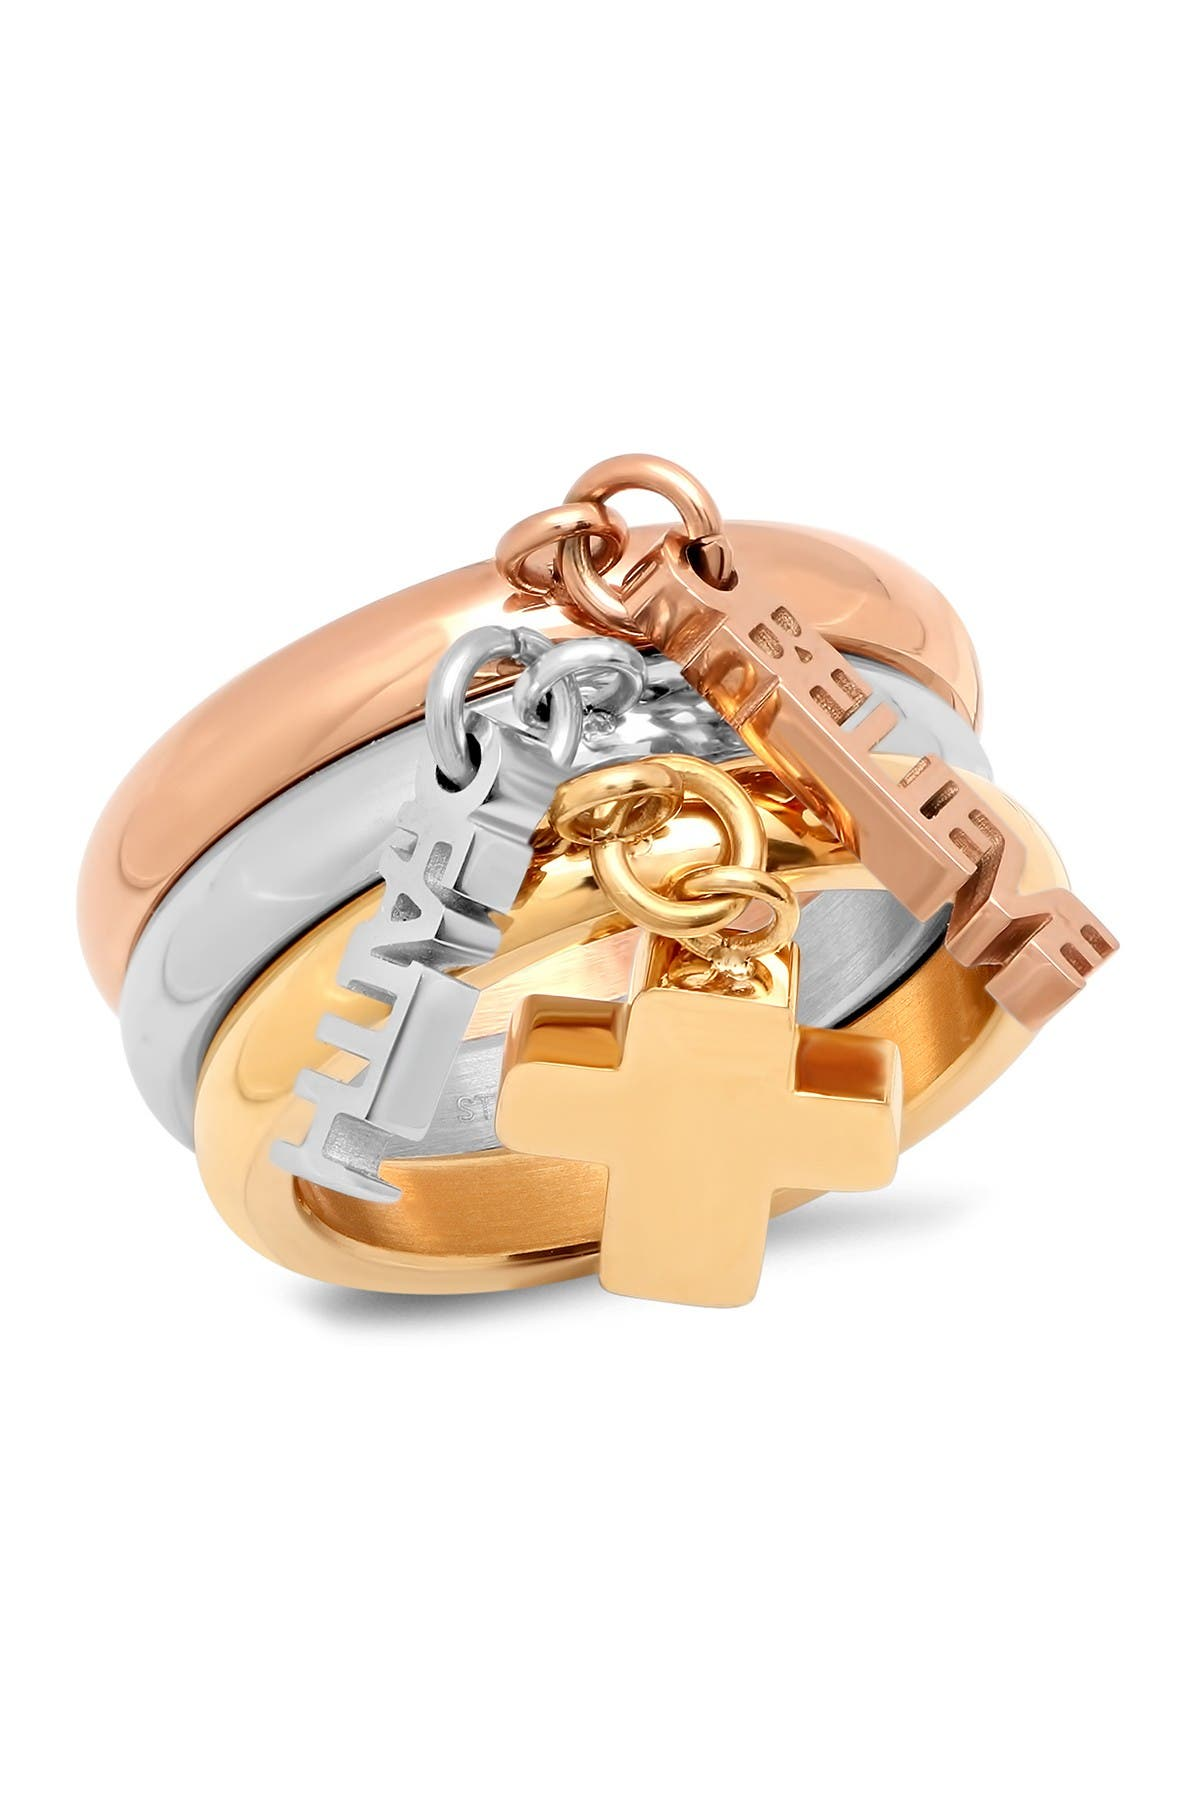 Image of HMY Jewelry Tri-Colored Charm Ring - Set of 3